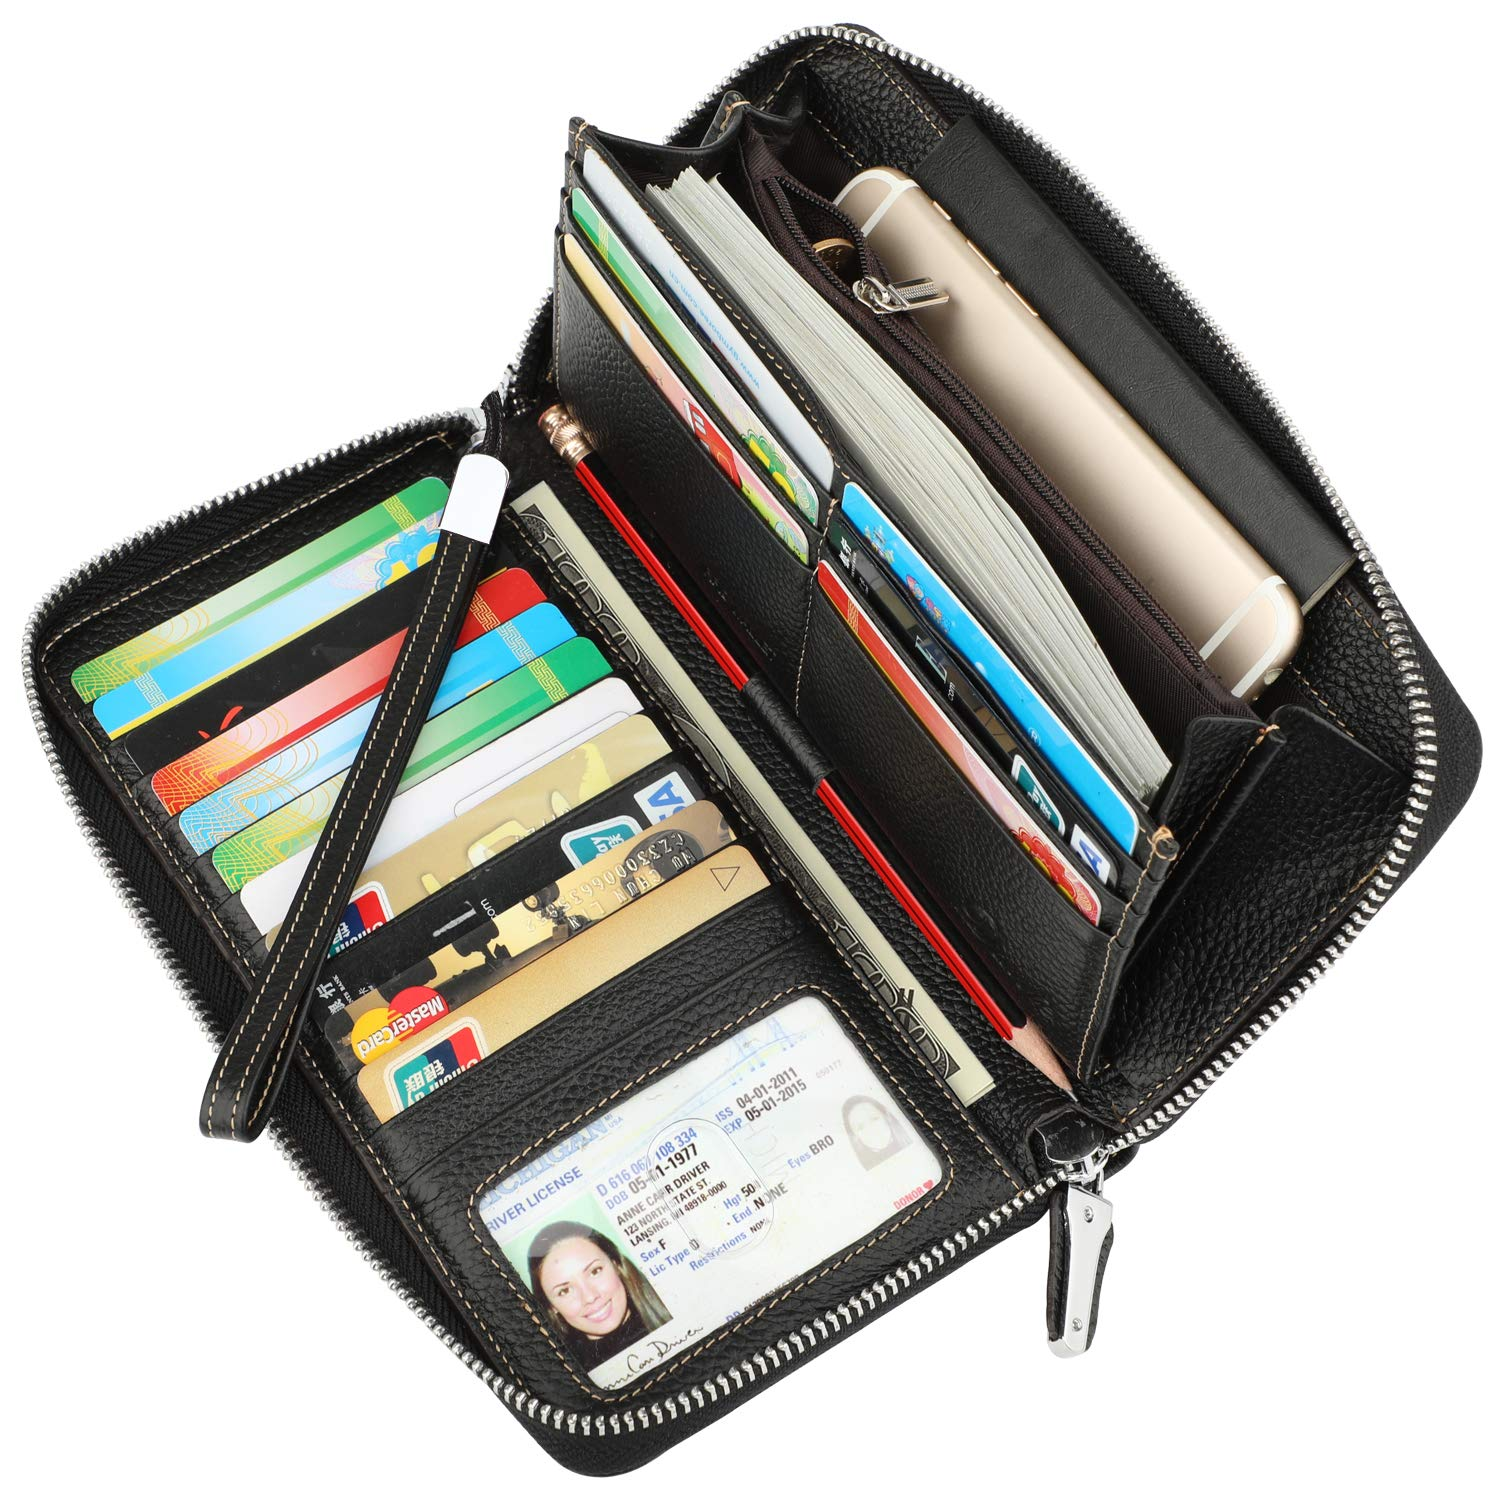 Lavemi Women's RFID Blocking Real Leather Zip Around Wallet Clutch Large Travel Purse Wristlet(Large Size Pebble Black)